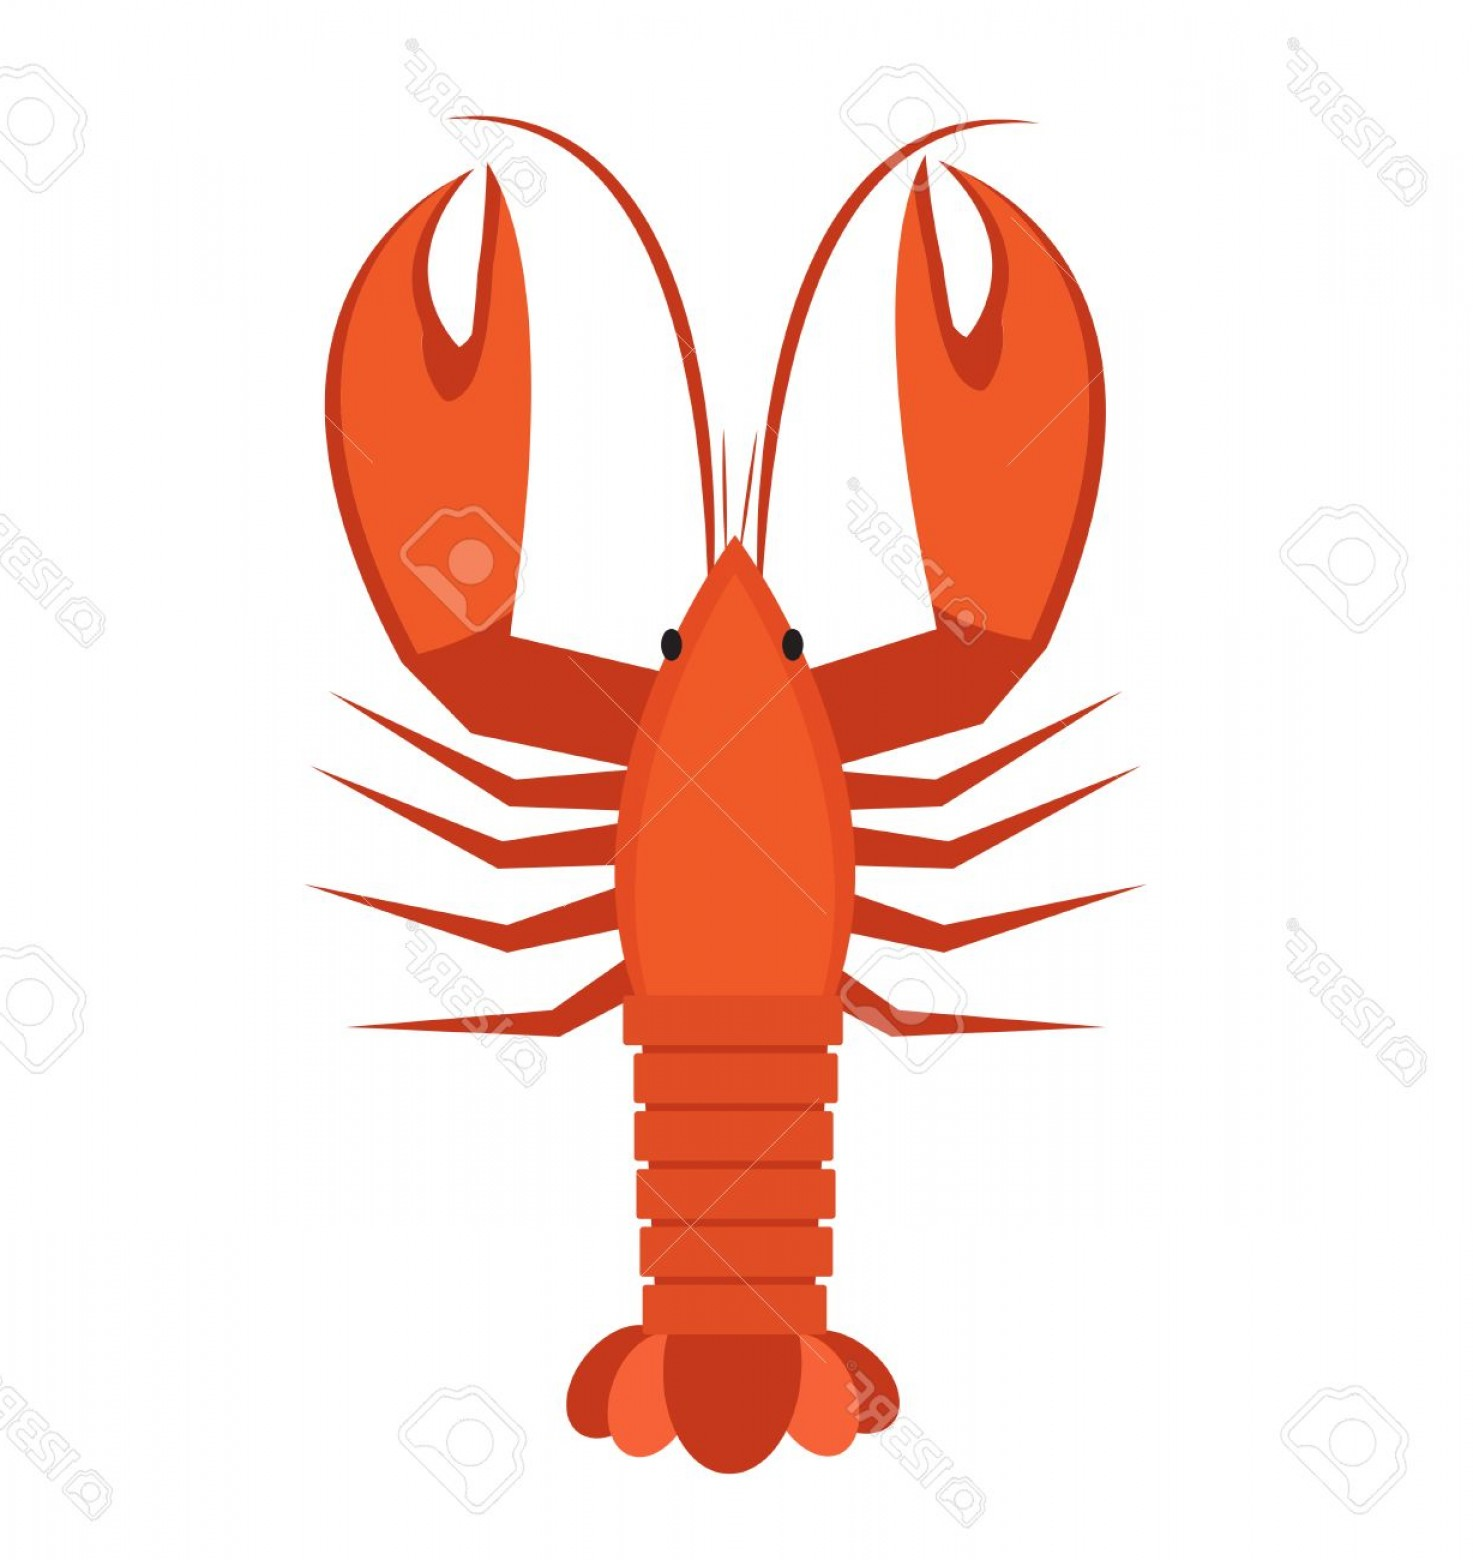 Lobster Clip Art Vector: Photostock Vector Crawfish Icon Flat Style Lobster Isolated On White Background Vector Illustration Clip Art